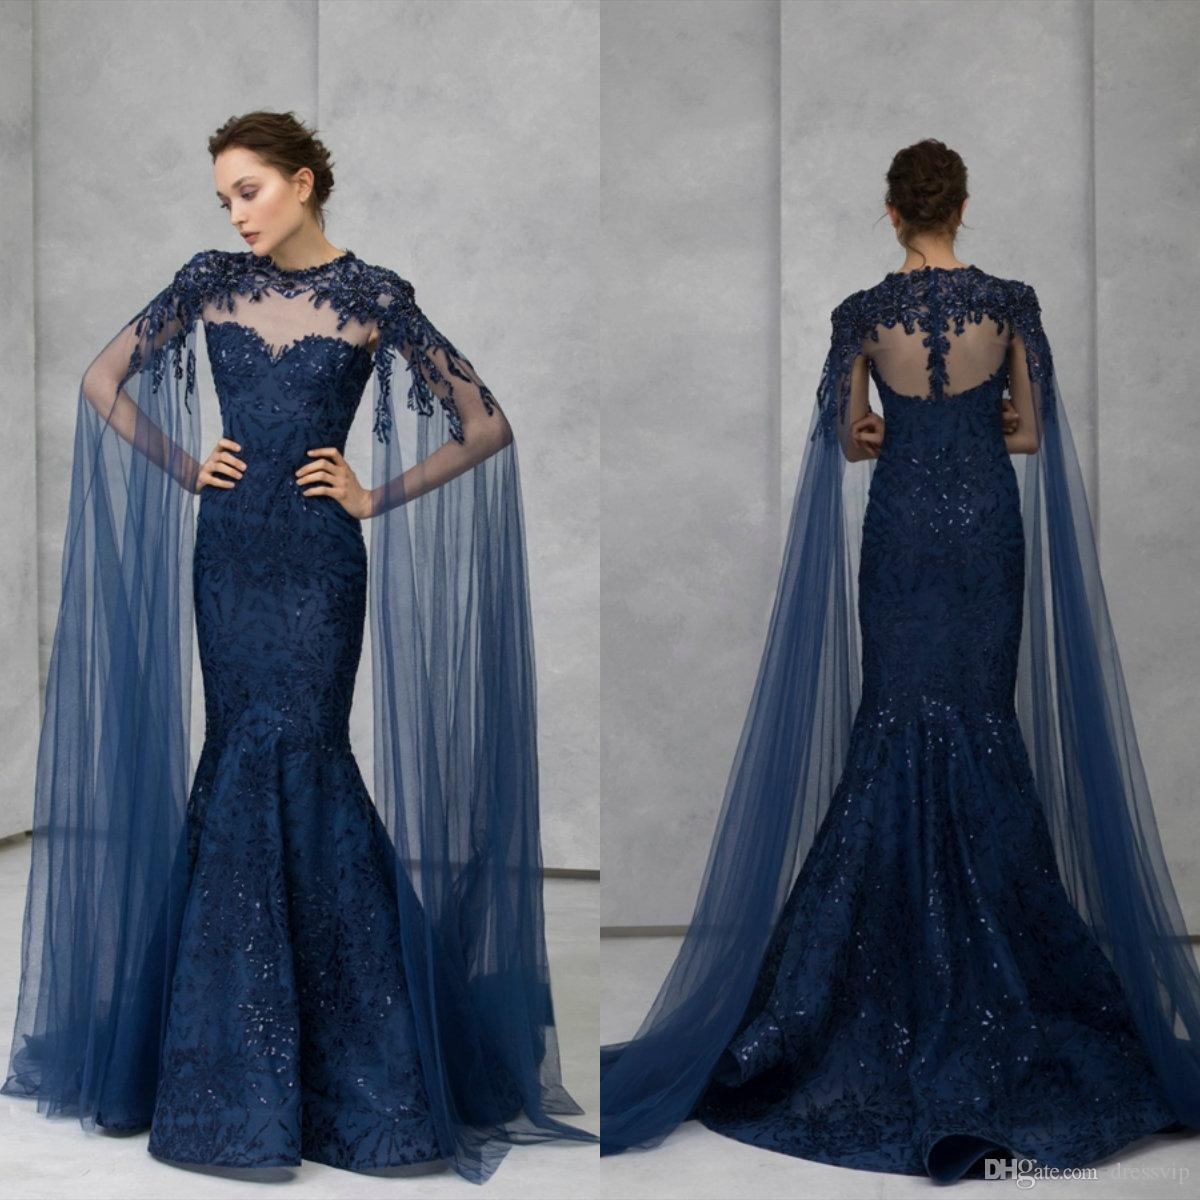 2020 Gorgeous Evening Dresses With Wrap Cape Lace Appliqued Beaded Mermaid Prom Dress Tony Ward Formal Party Gowns Robes De Soirée